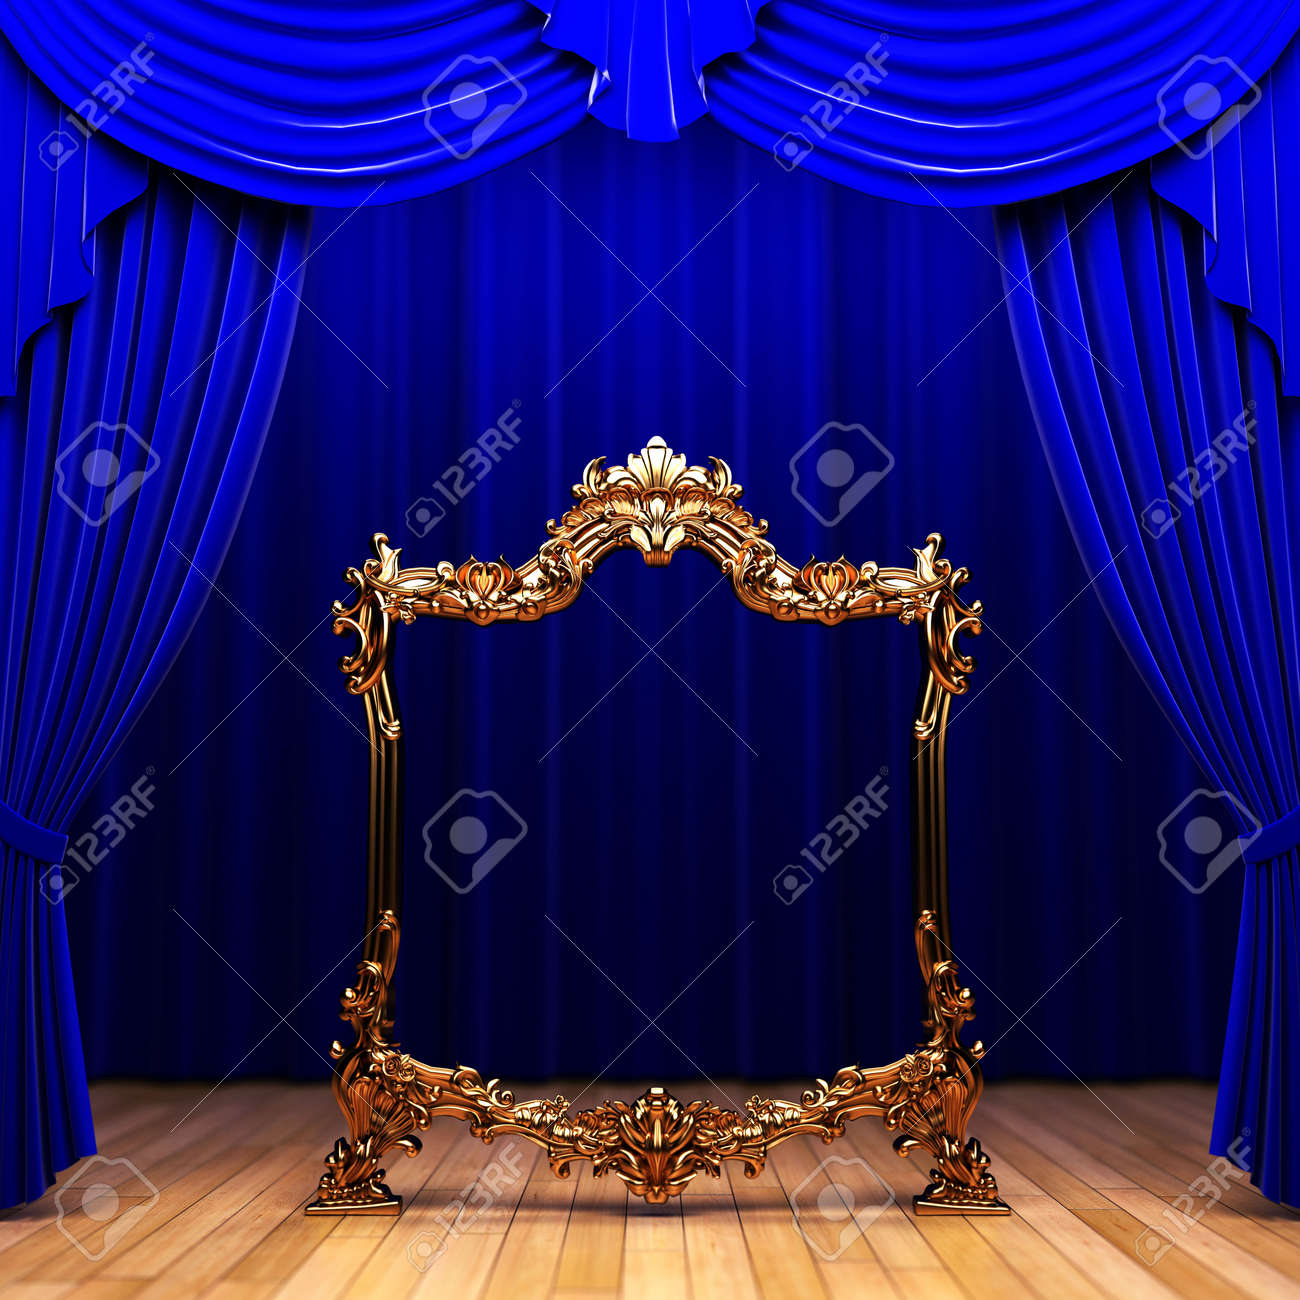 blue curtains, gold frame Stock Photo - 6251198